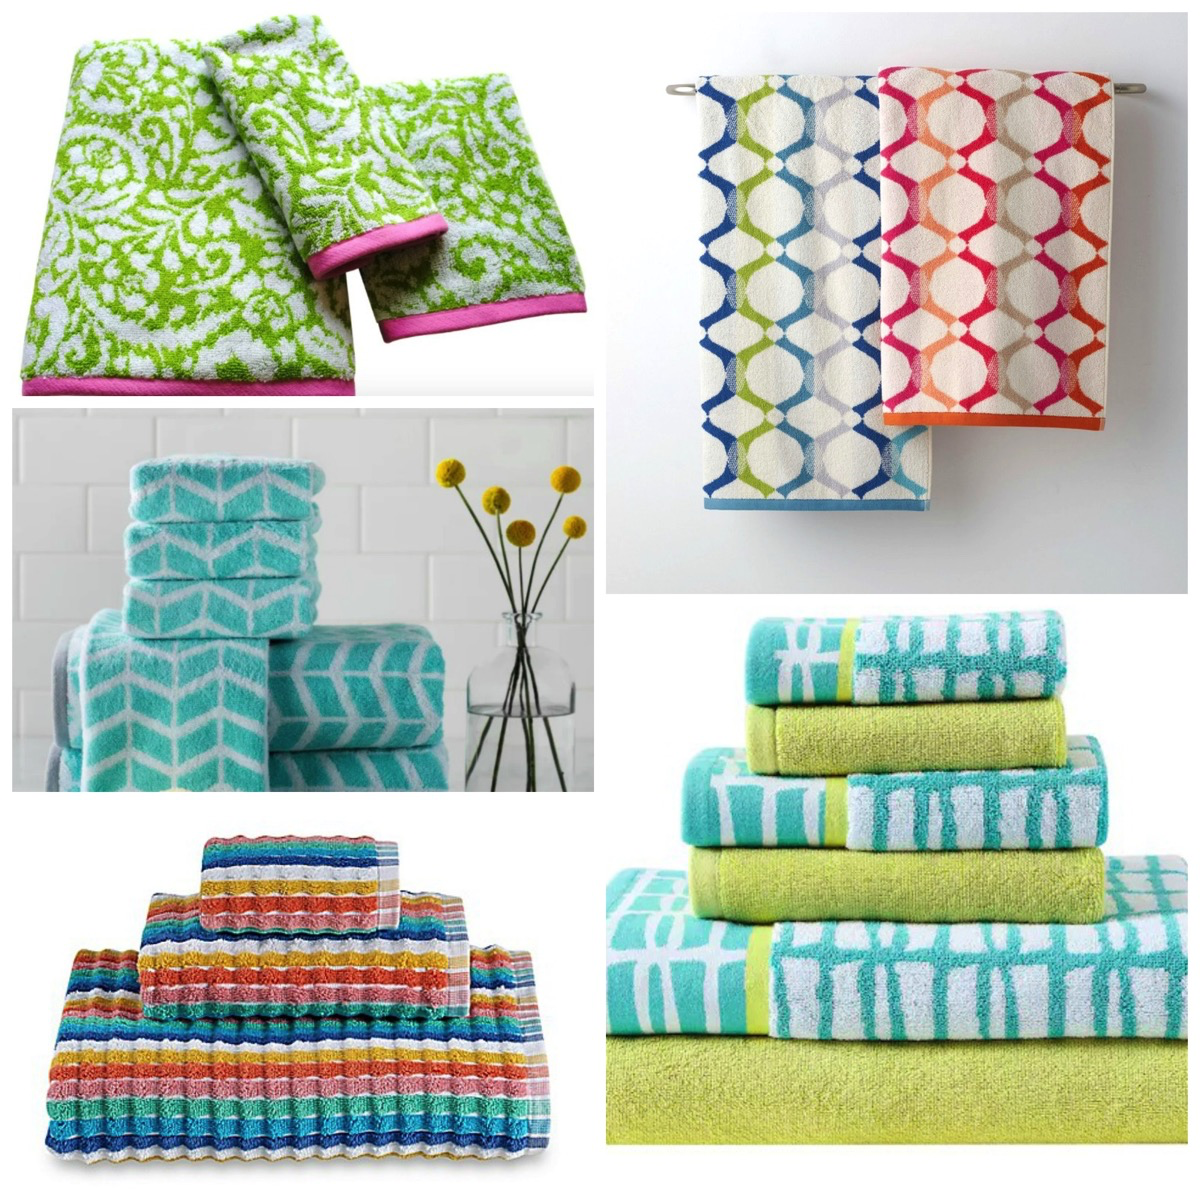 Bold and Colorfully Patterned Bathroom Towel Sets, Switch It Up With Something Other Than Solid Colors.